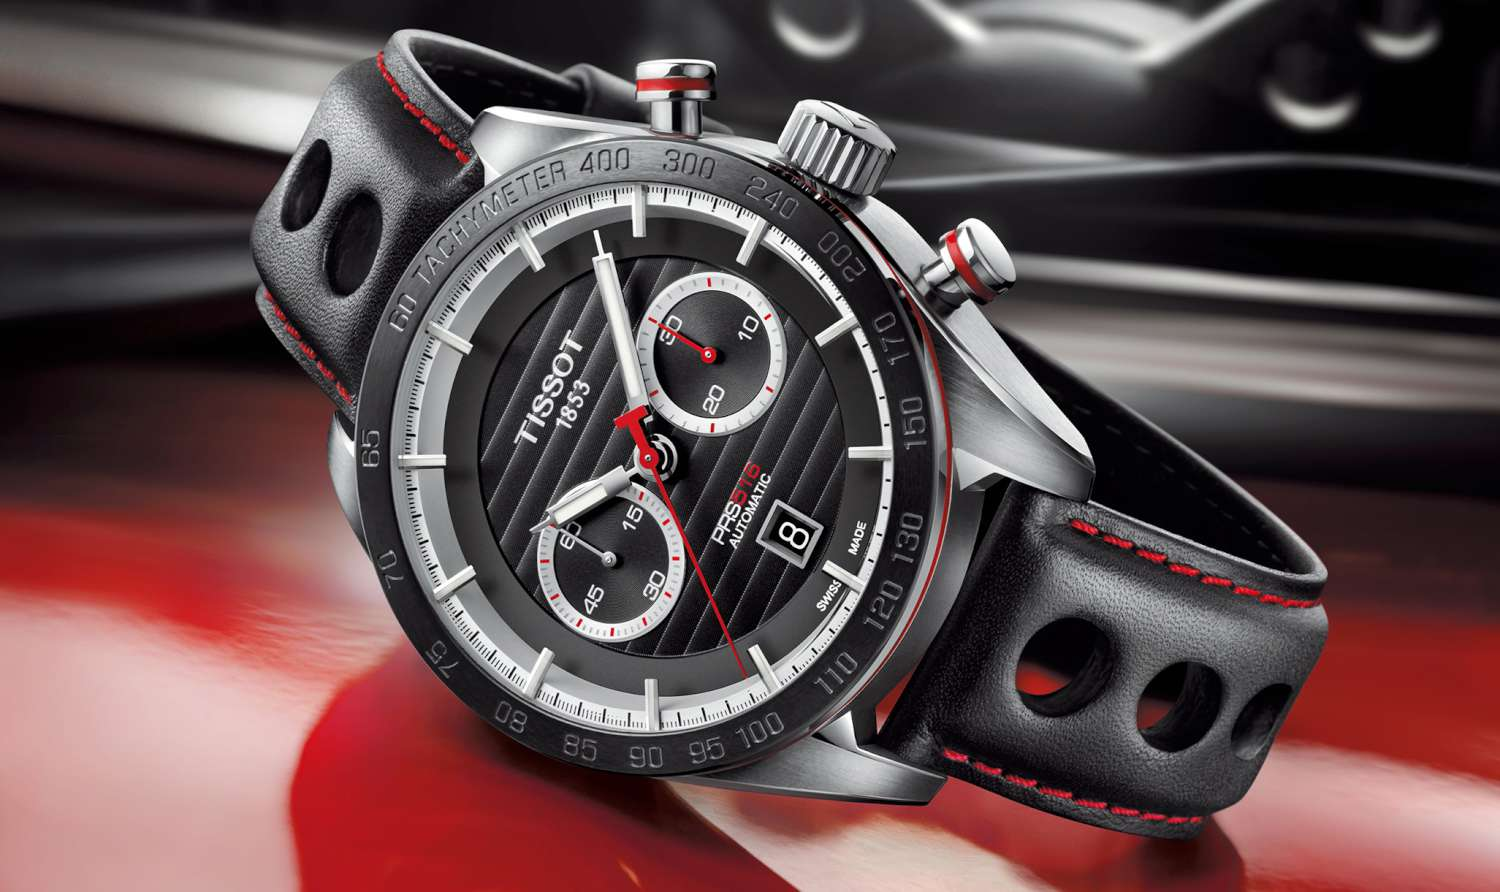 racing auto reservoir monochrome car watches baselworld gt from inspired tour supercharged